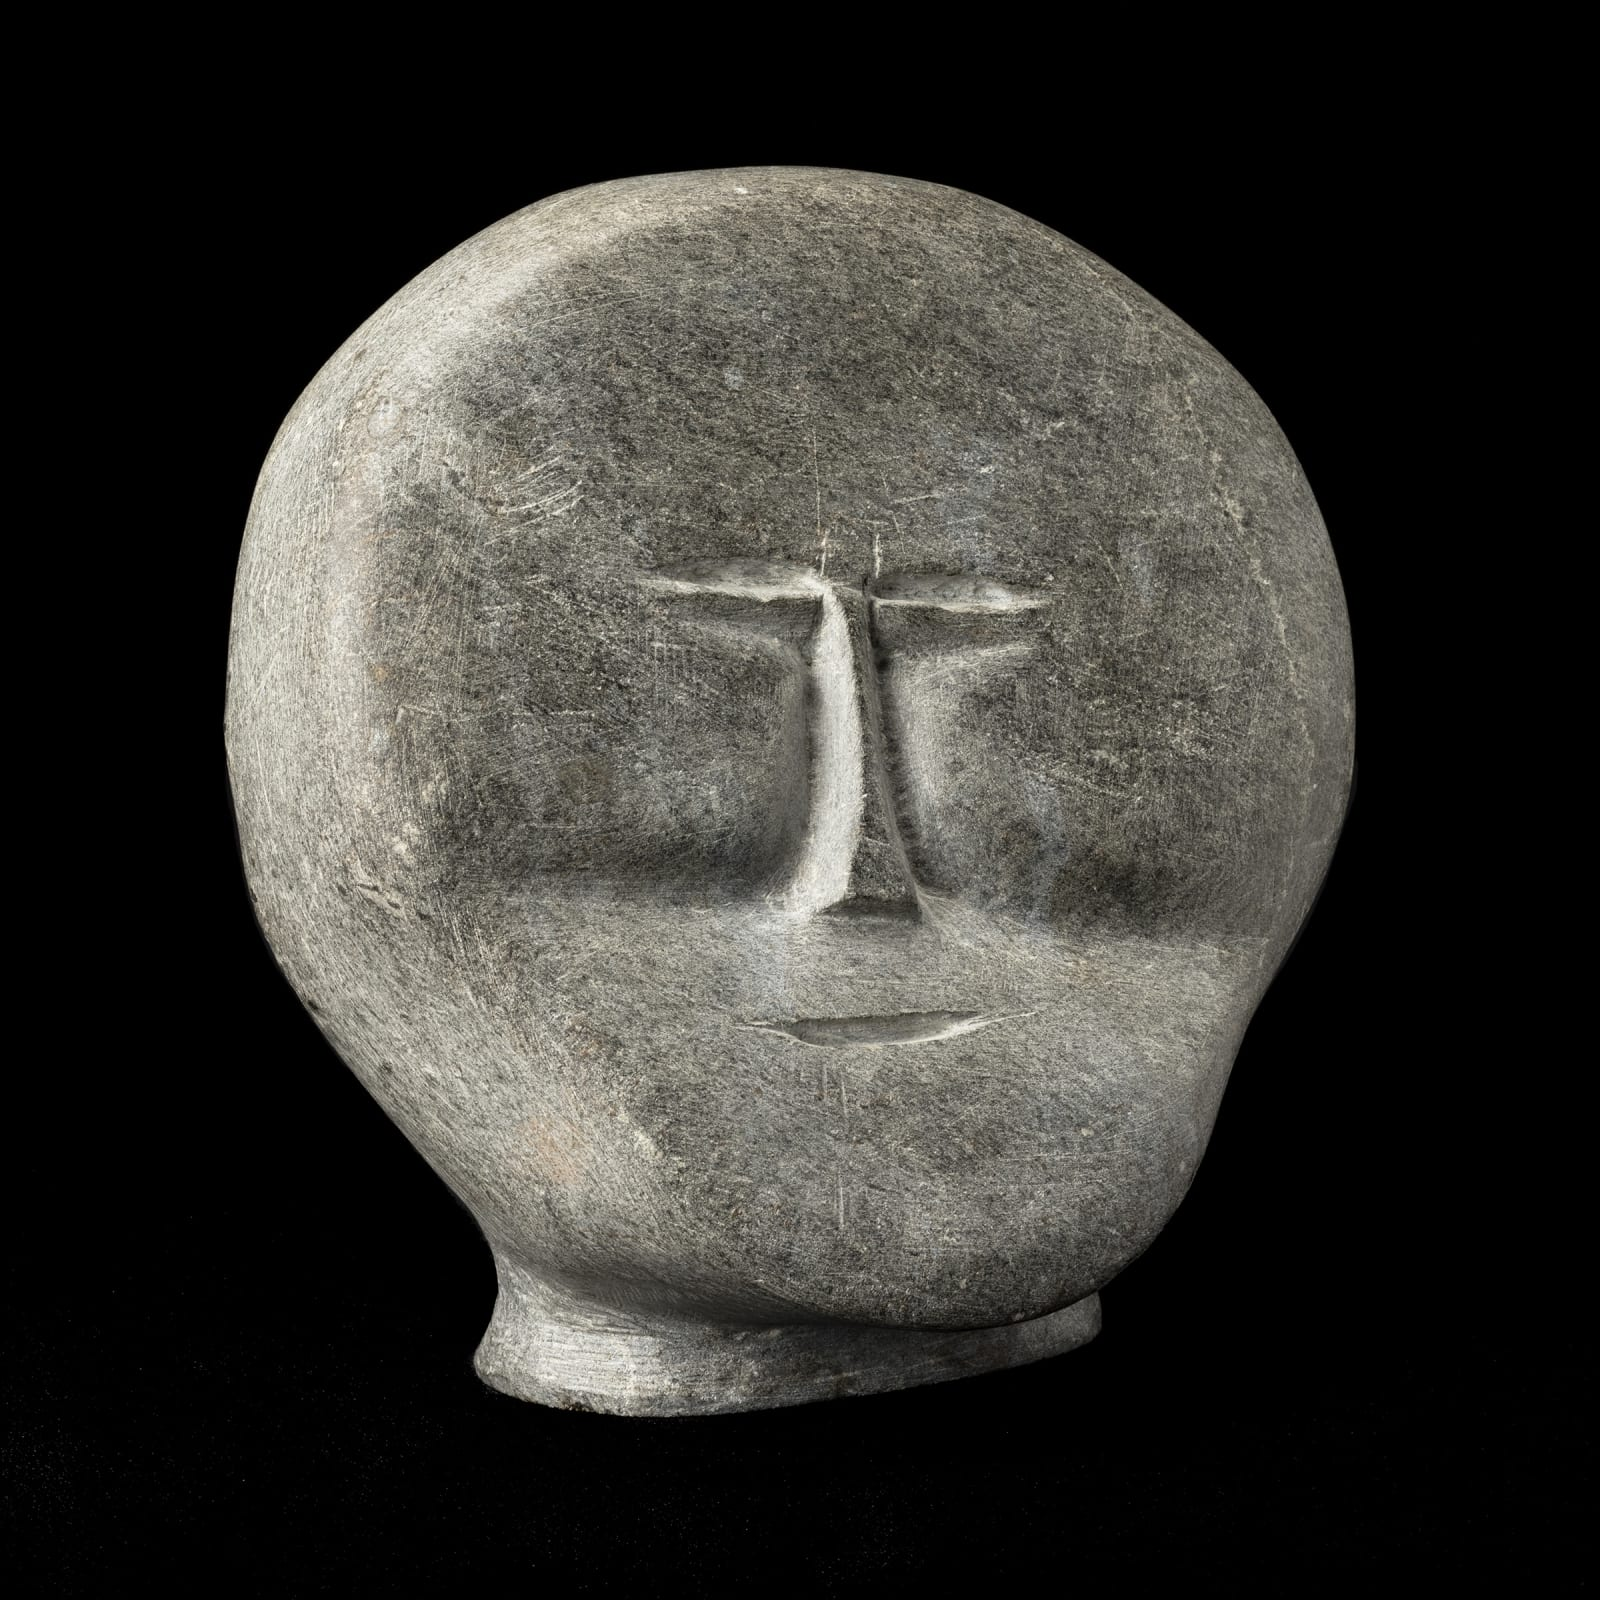 JOHN TIKTAK, R.C.A. (1916-1981) KANGIQLINIQ (RANKIN INLET)  Head, c. 1965-6  REALIZED: $28,800